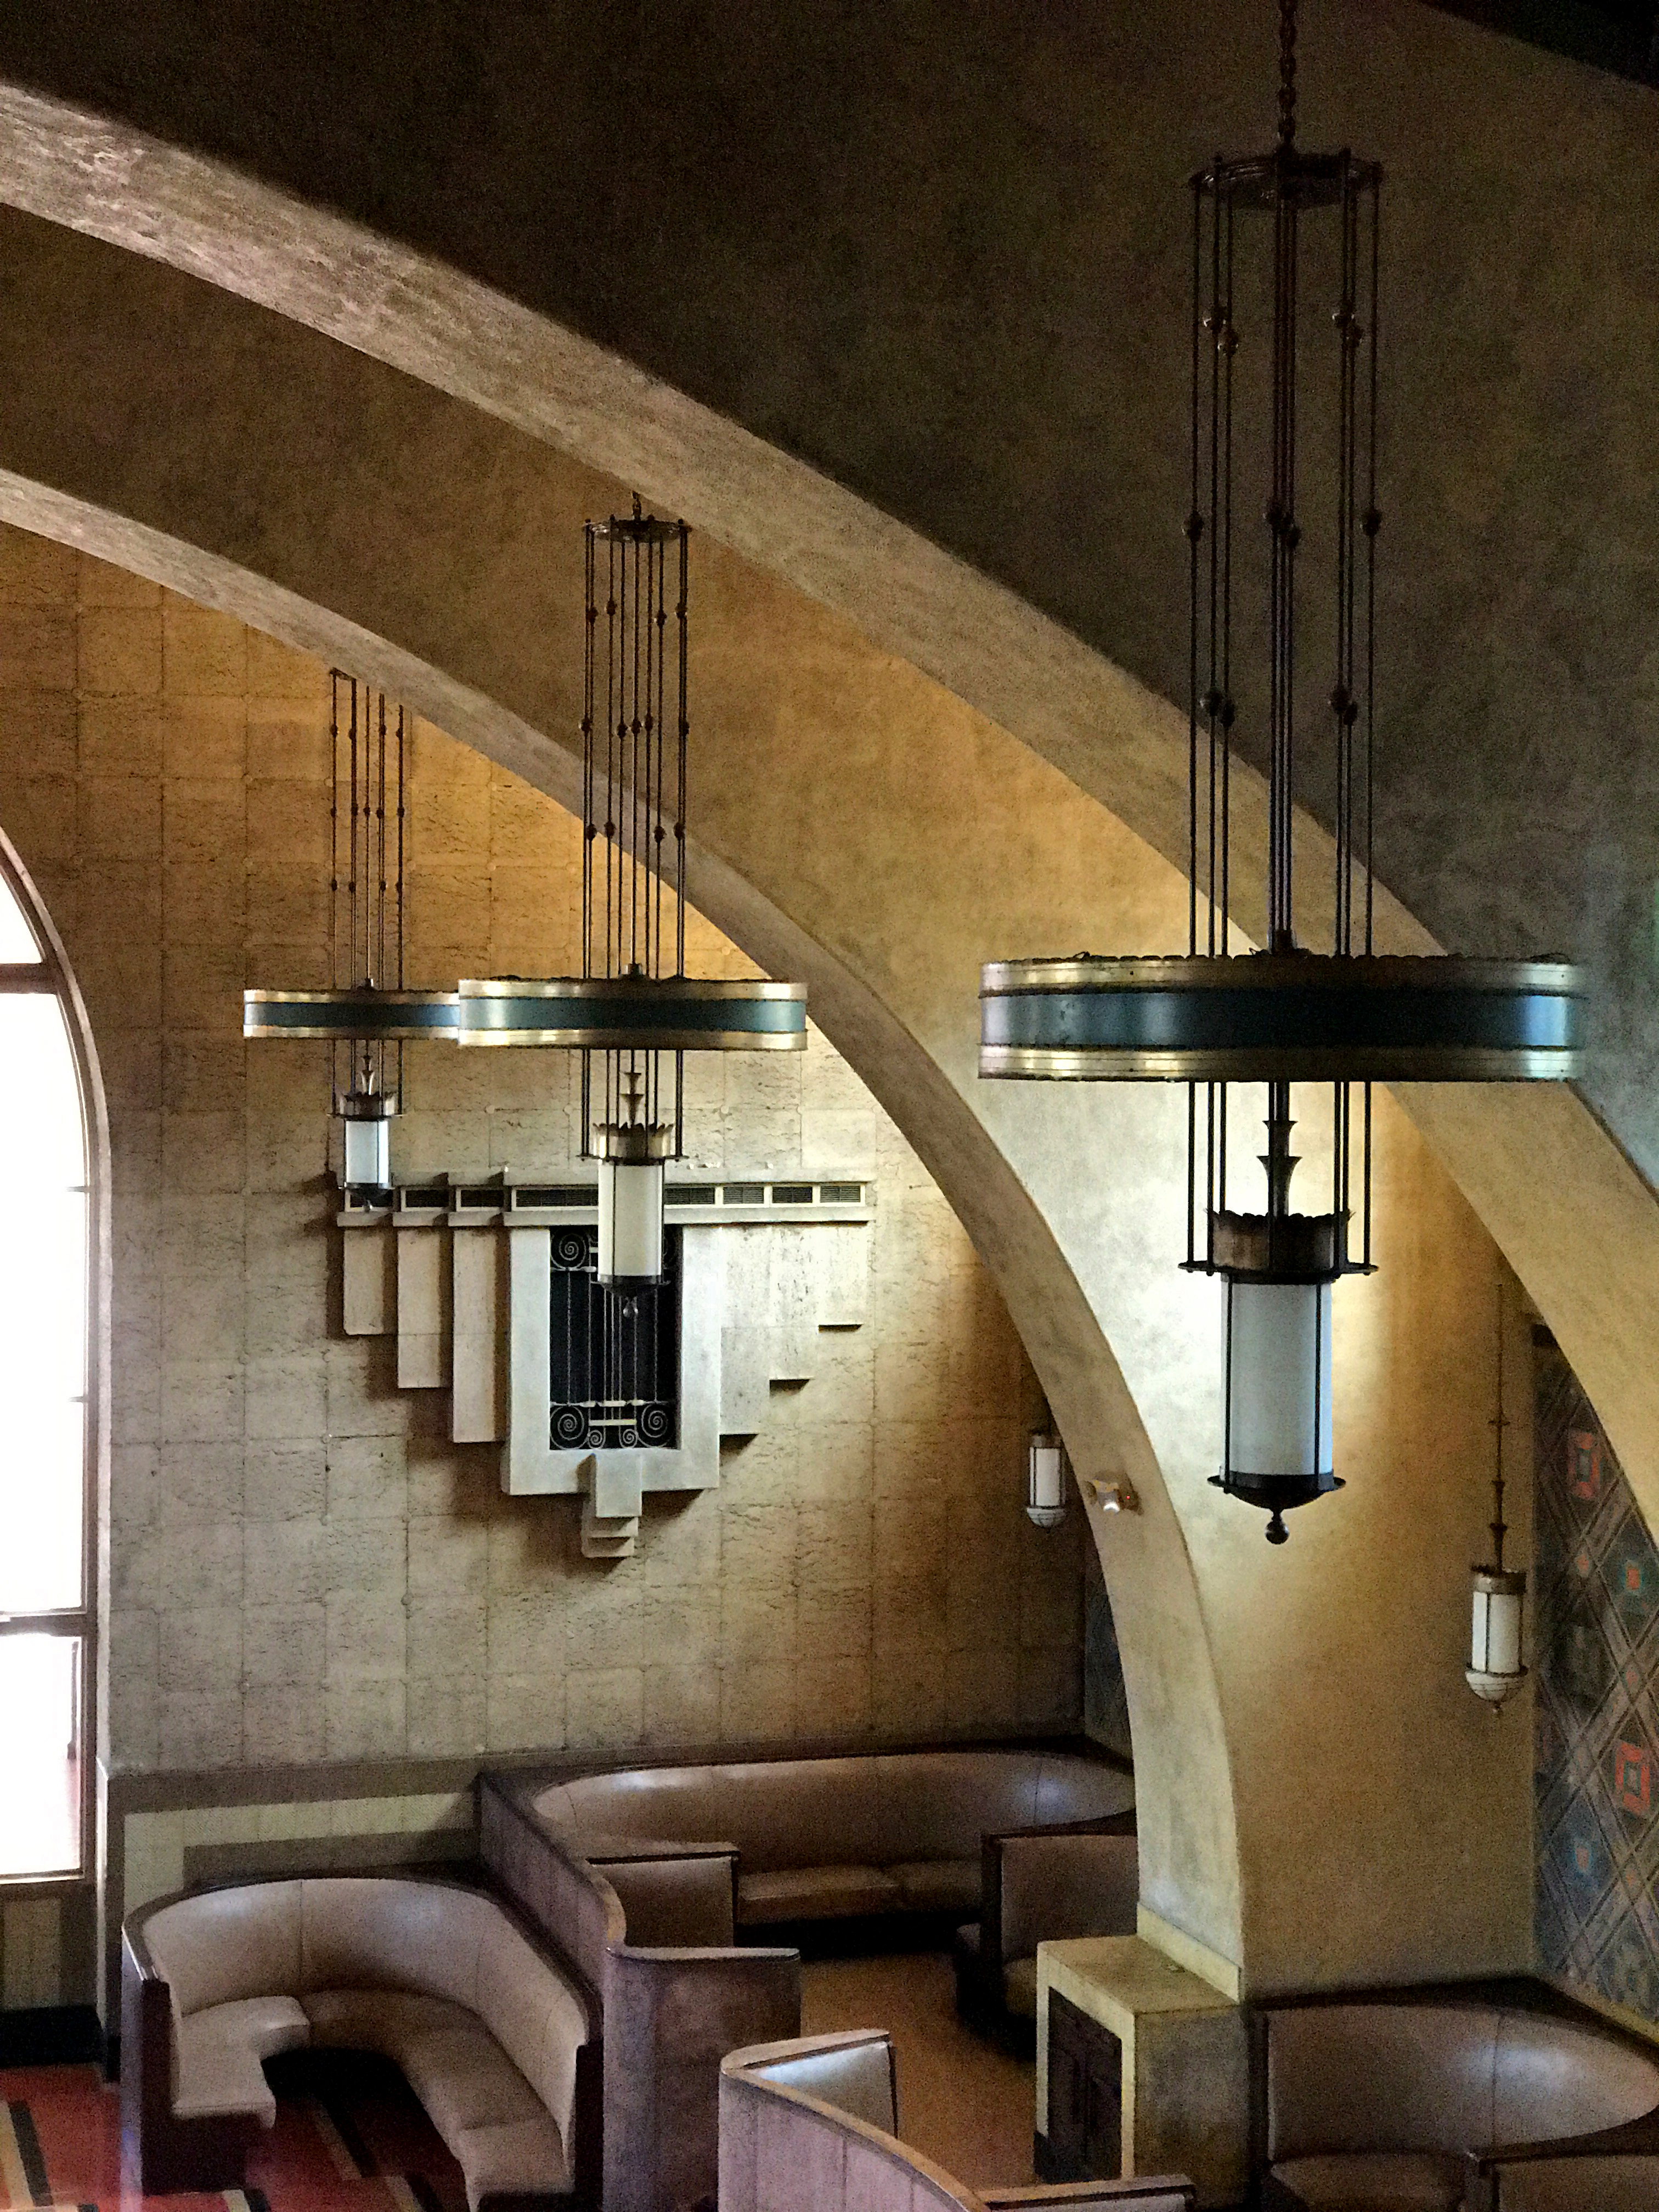 union station's fred harvey room is officially restored - curbed la